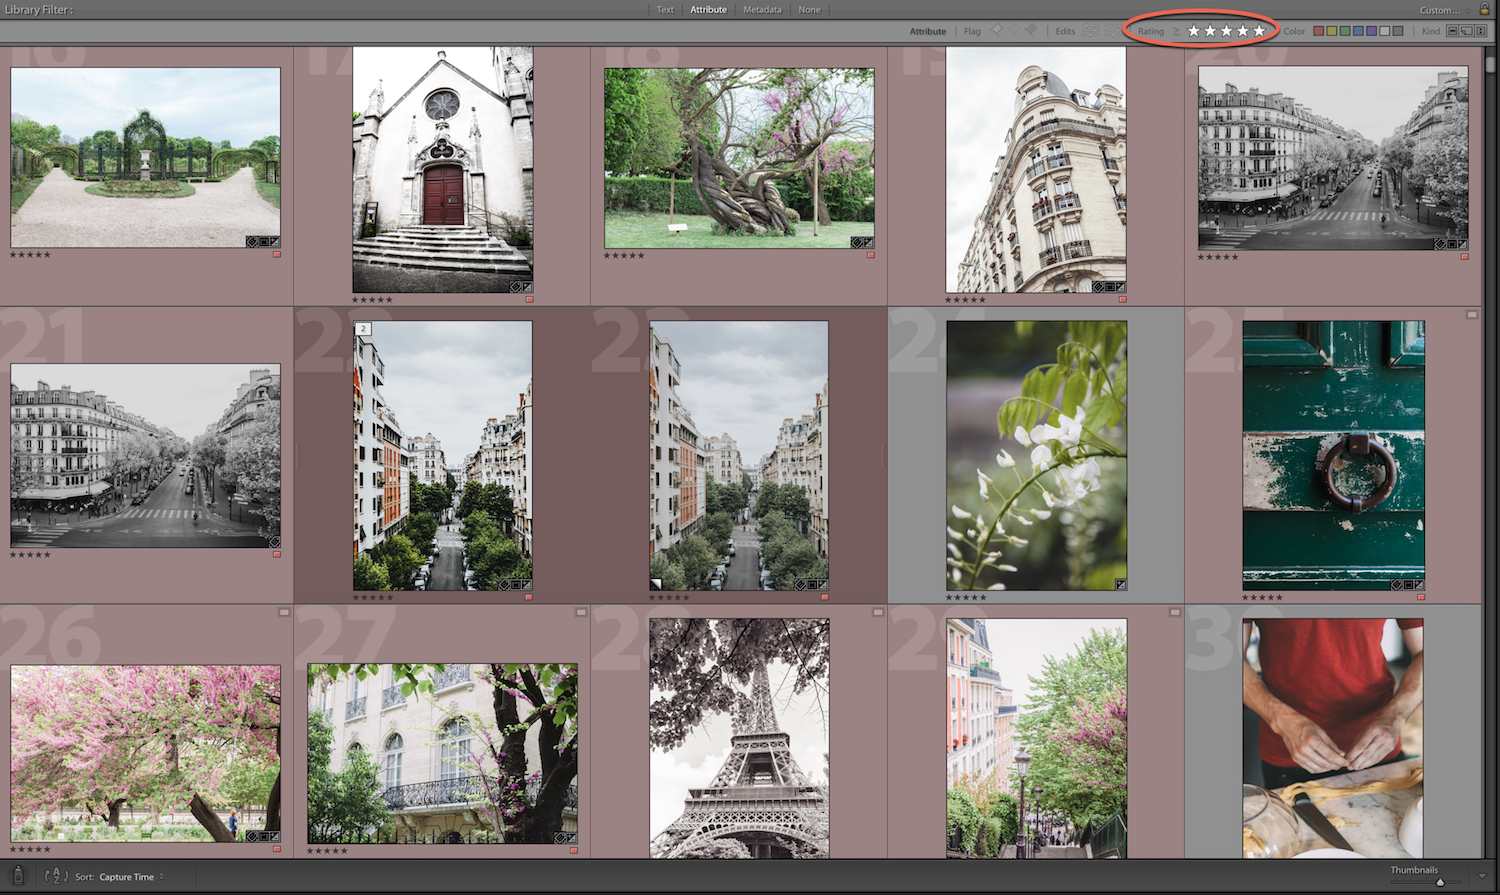 attribute - How to Find for Your Photos in the Lightroom Catalog Using Filters